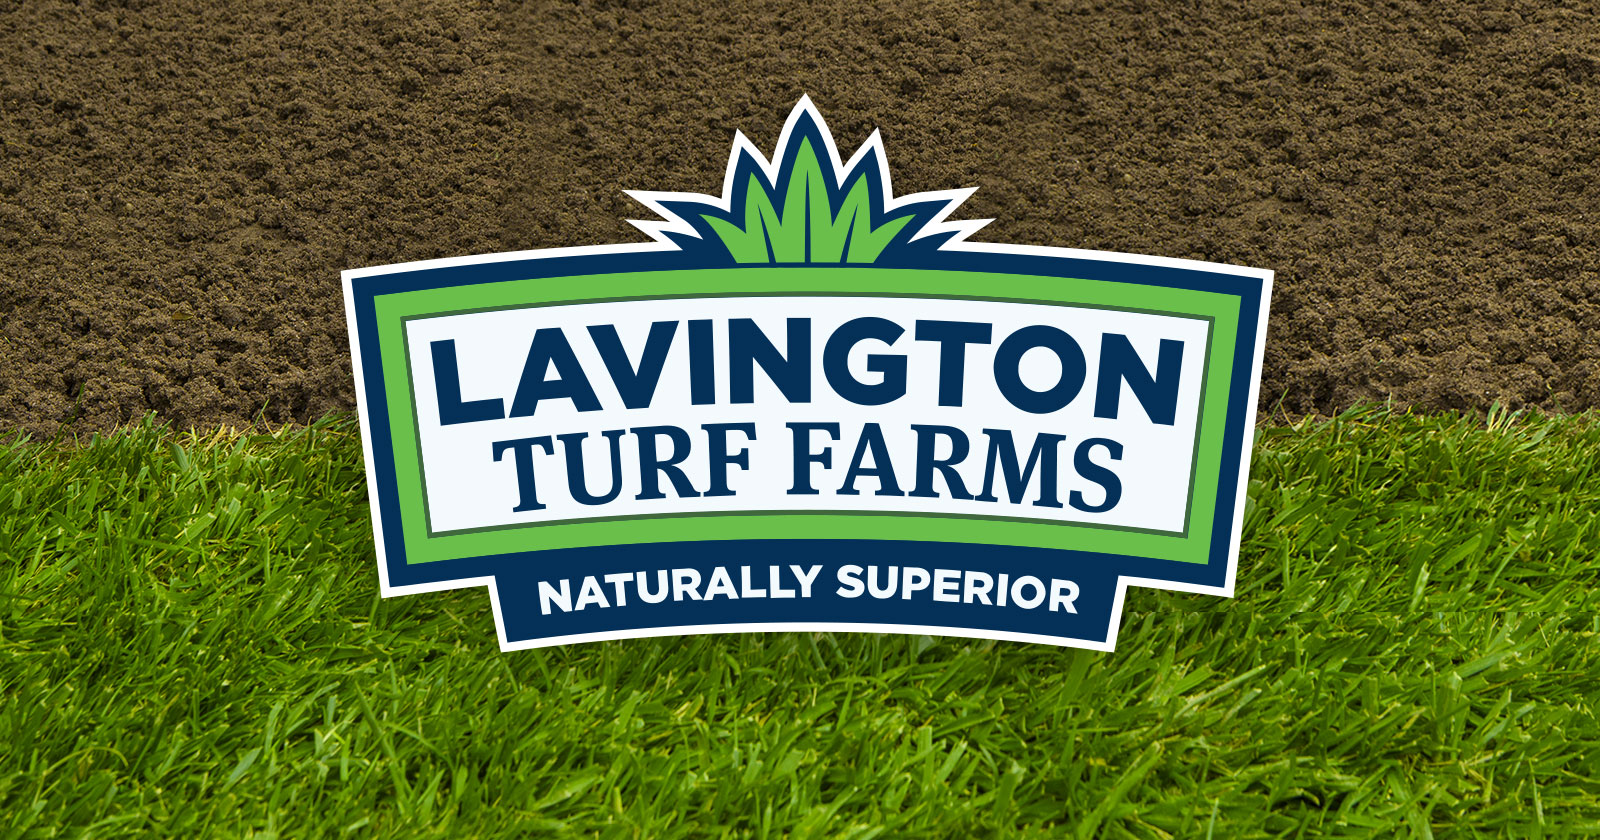 Naturally Superior Topsoil, Sod & Grass – Lavington Turf Farms